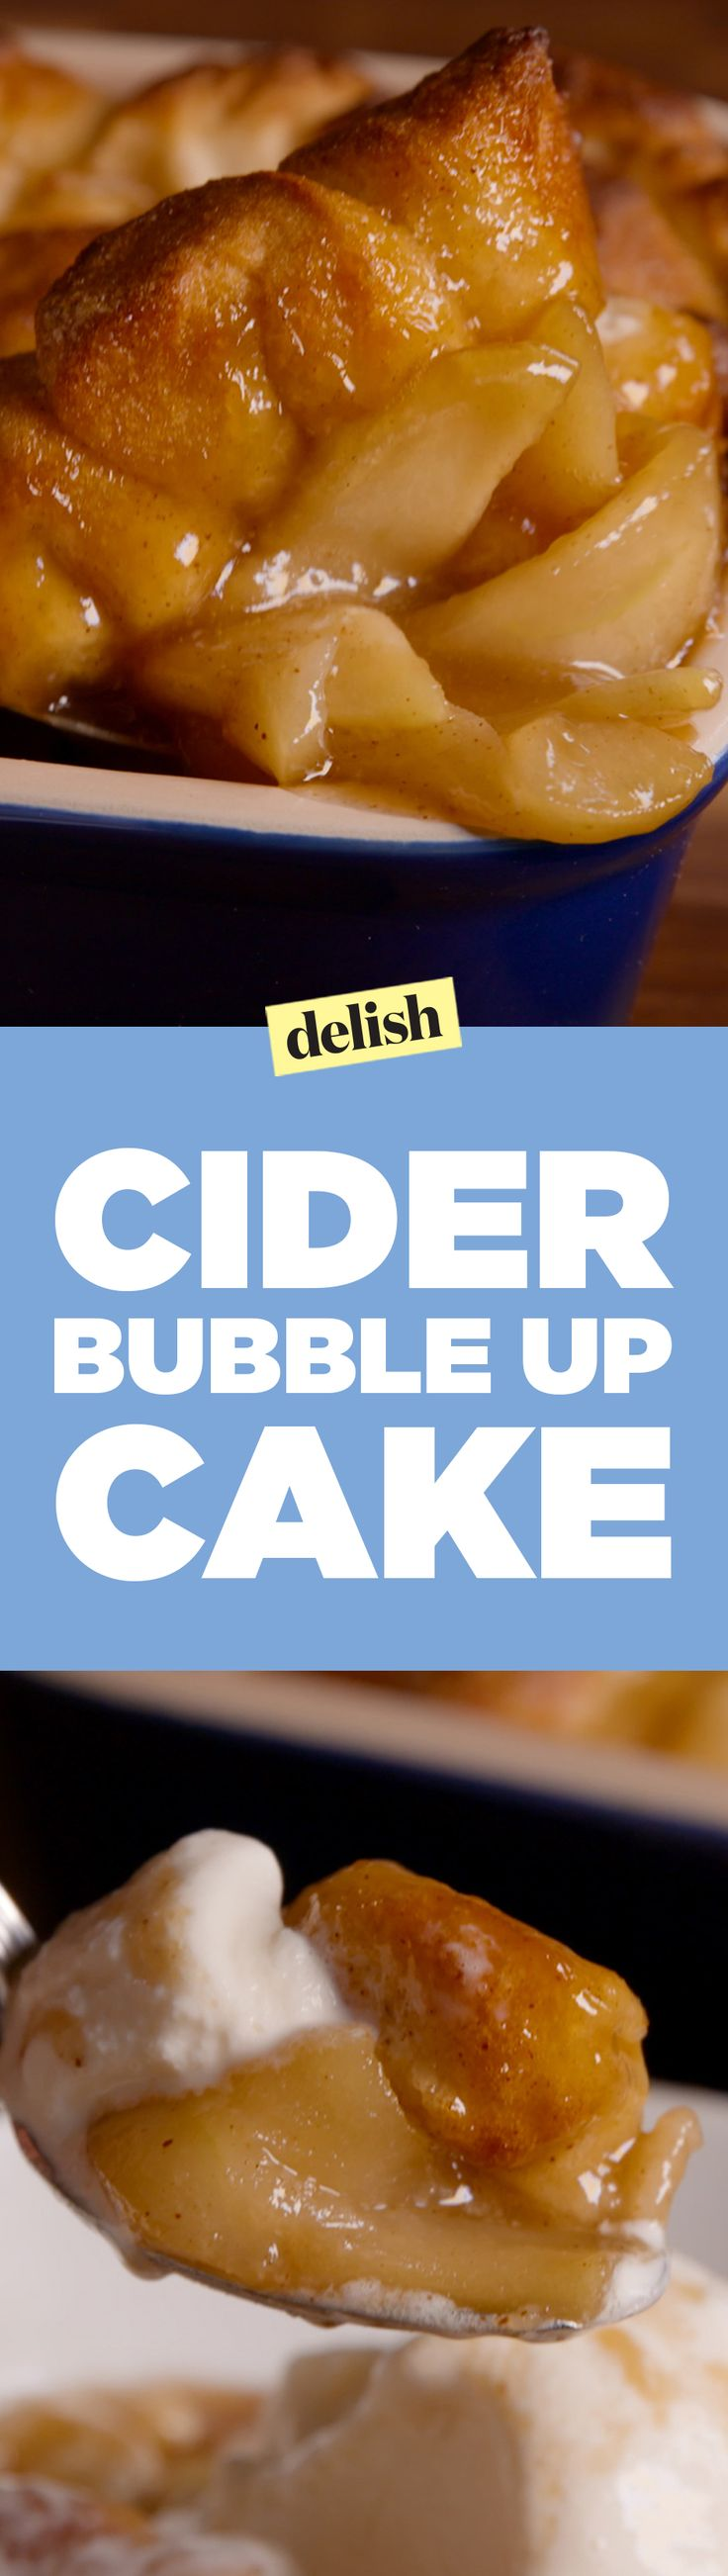 Cider bubble-up cake will be the most popular thing on the dessert table. Get the recipe on Delish.com.